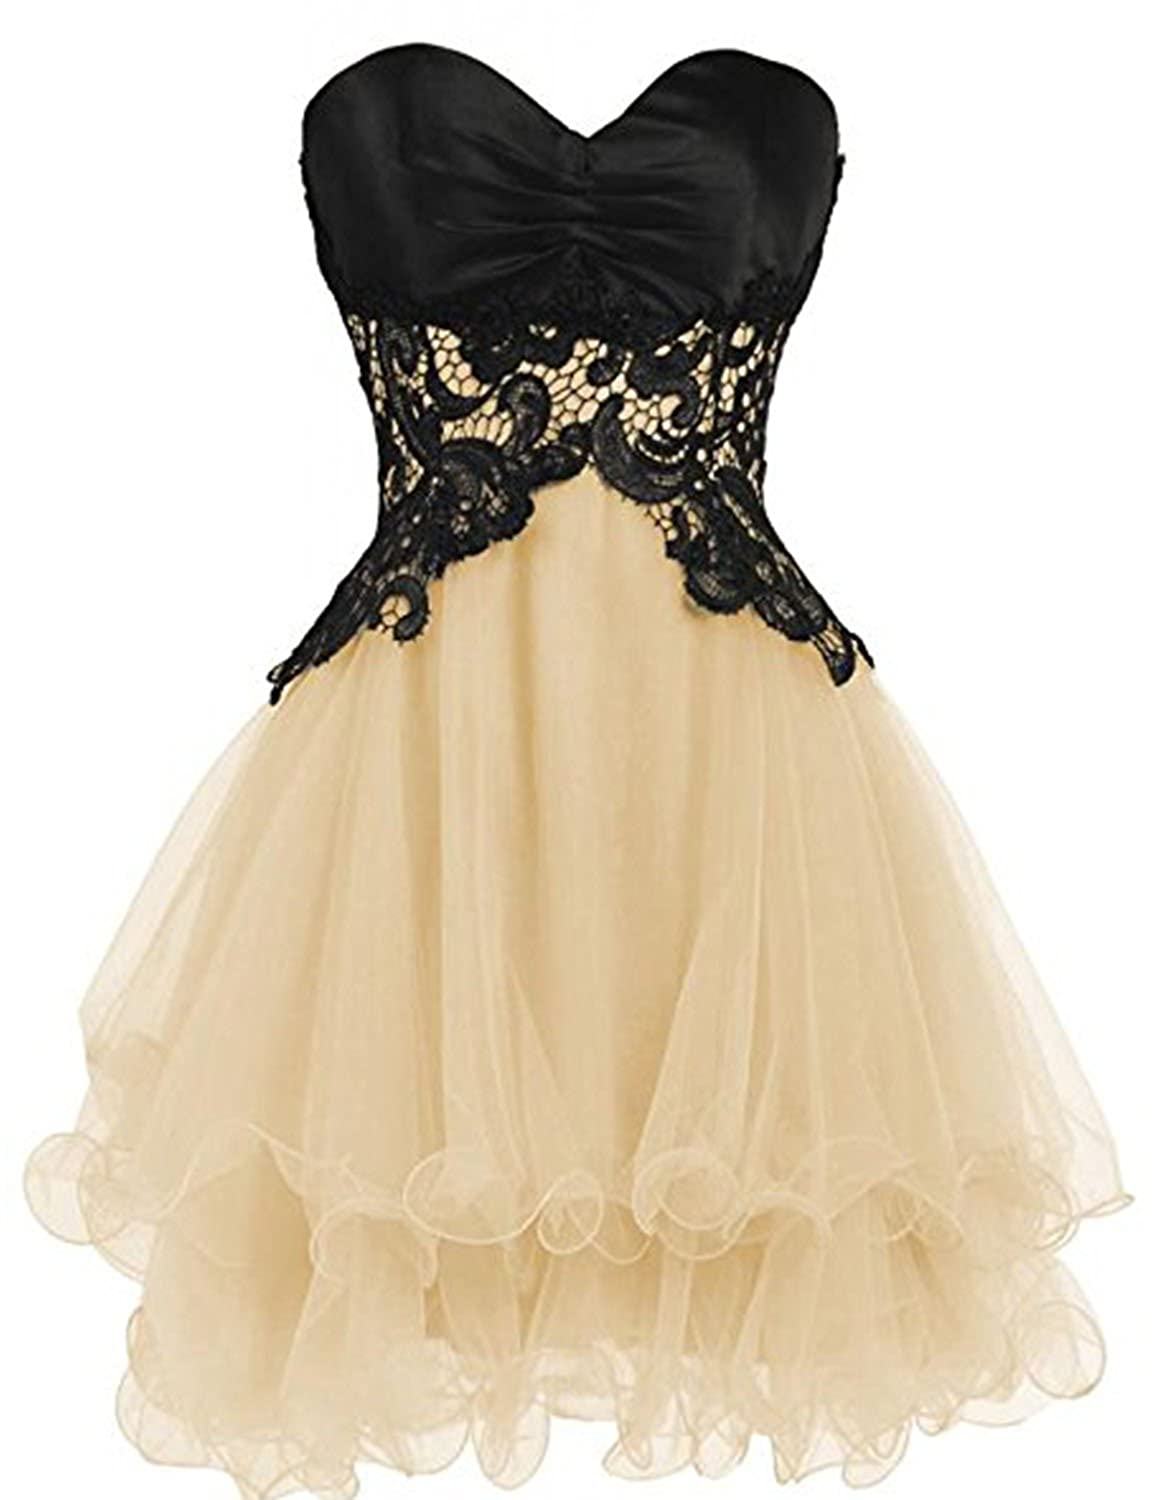 Champagne YIRENWANSHA Sexy Short Homecoming Dress Elegant Satin Knee Length Tulle Prom Party Gown YJW3